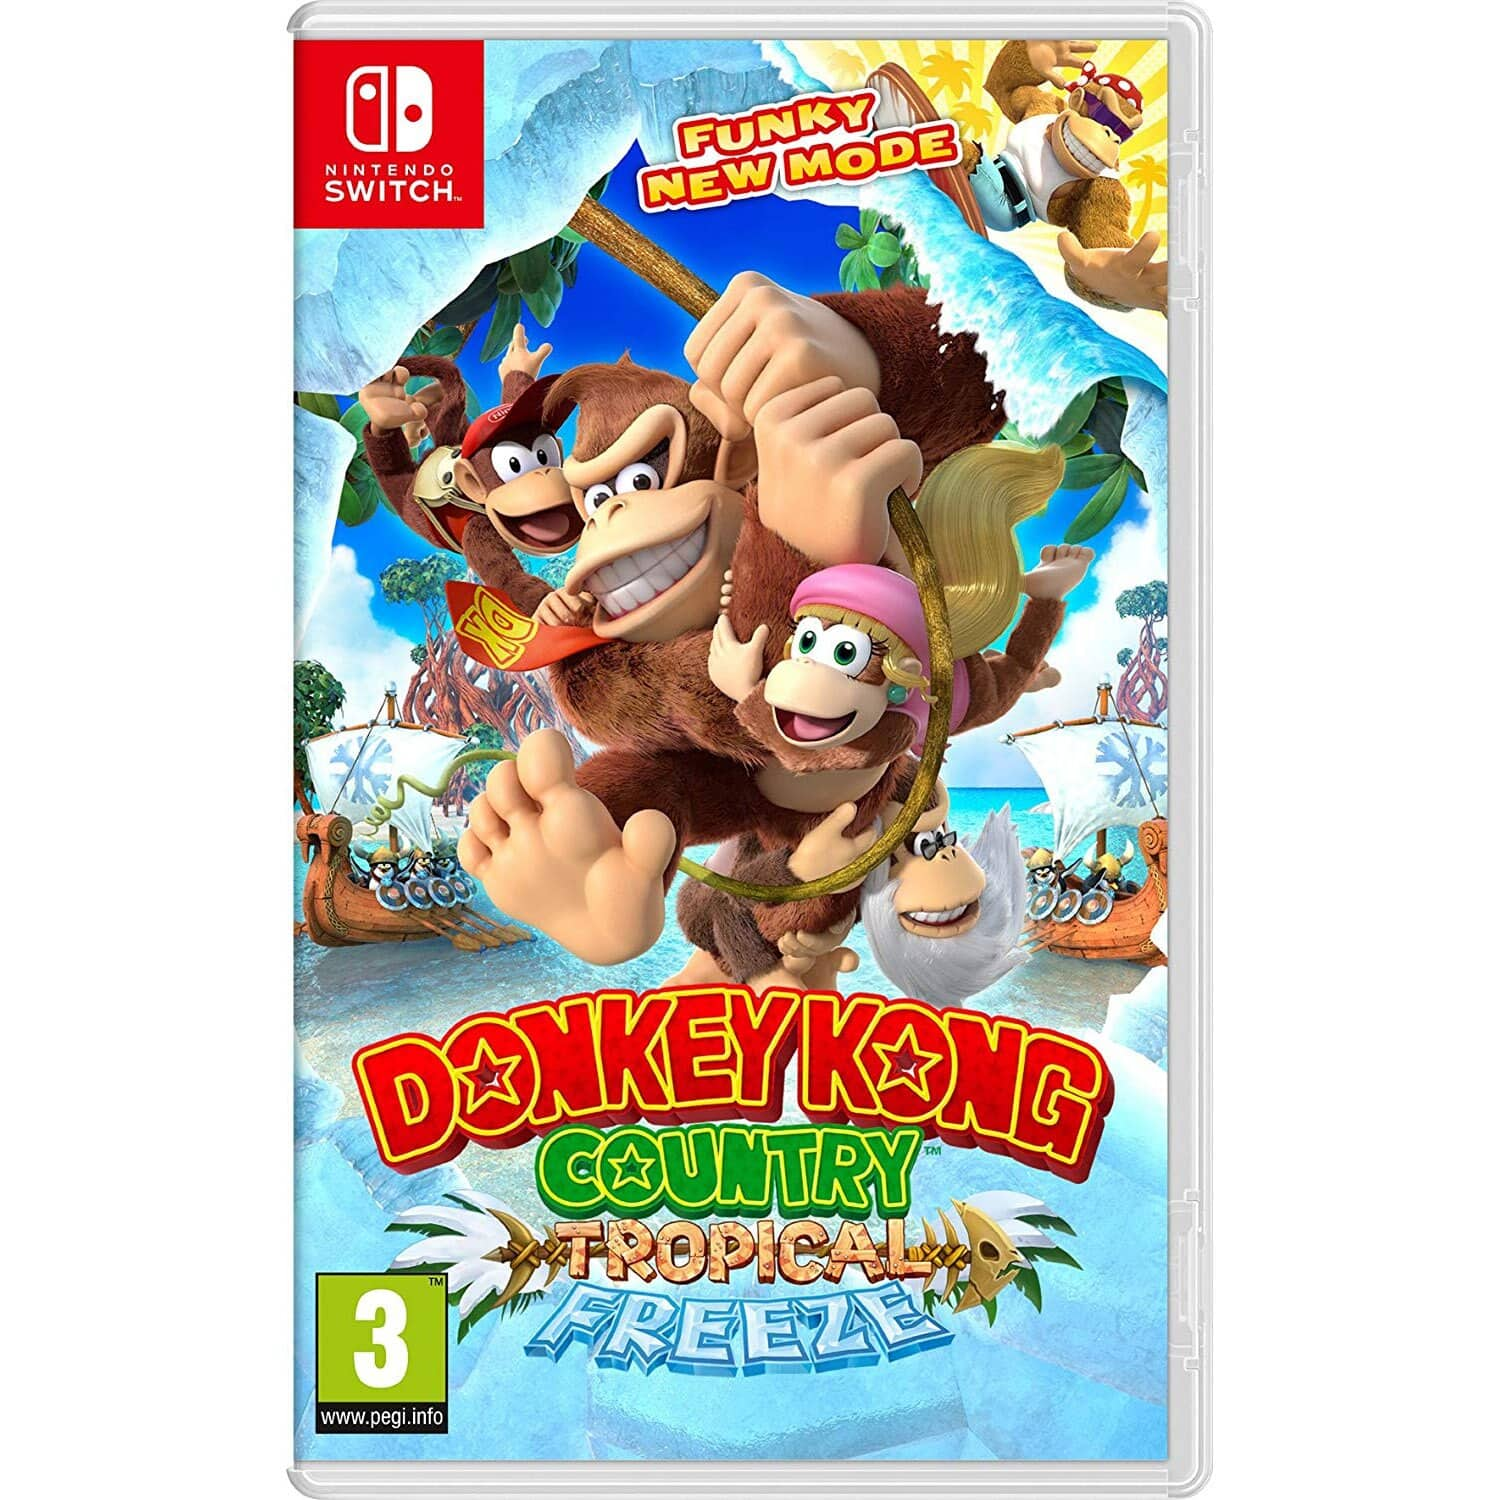 Nintendo Switch  Mario Kart 8 Deluxe (Region Free) $42.50, Donkey Kong Tropical Freeze $41.65 & More